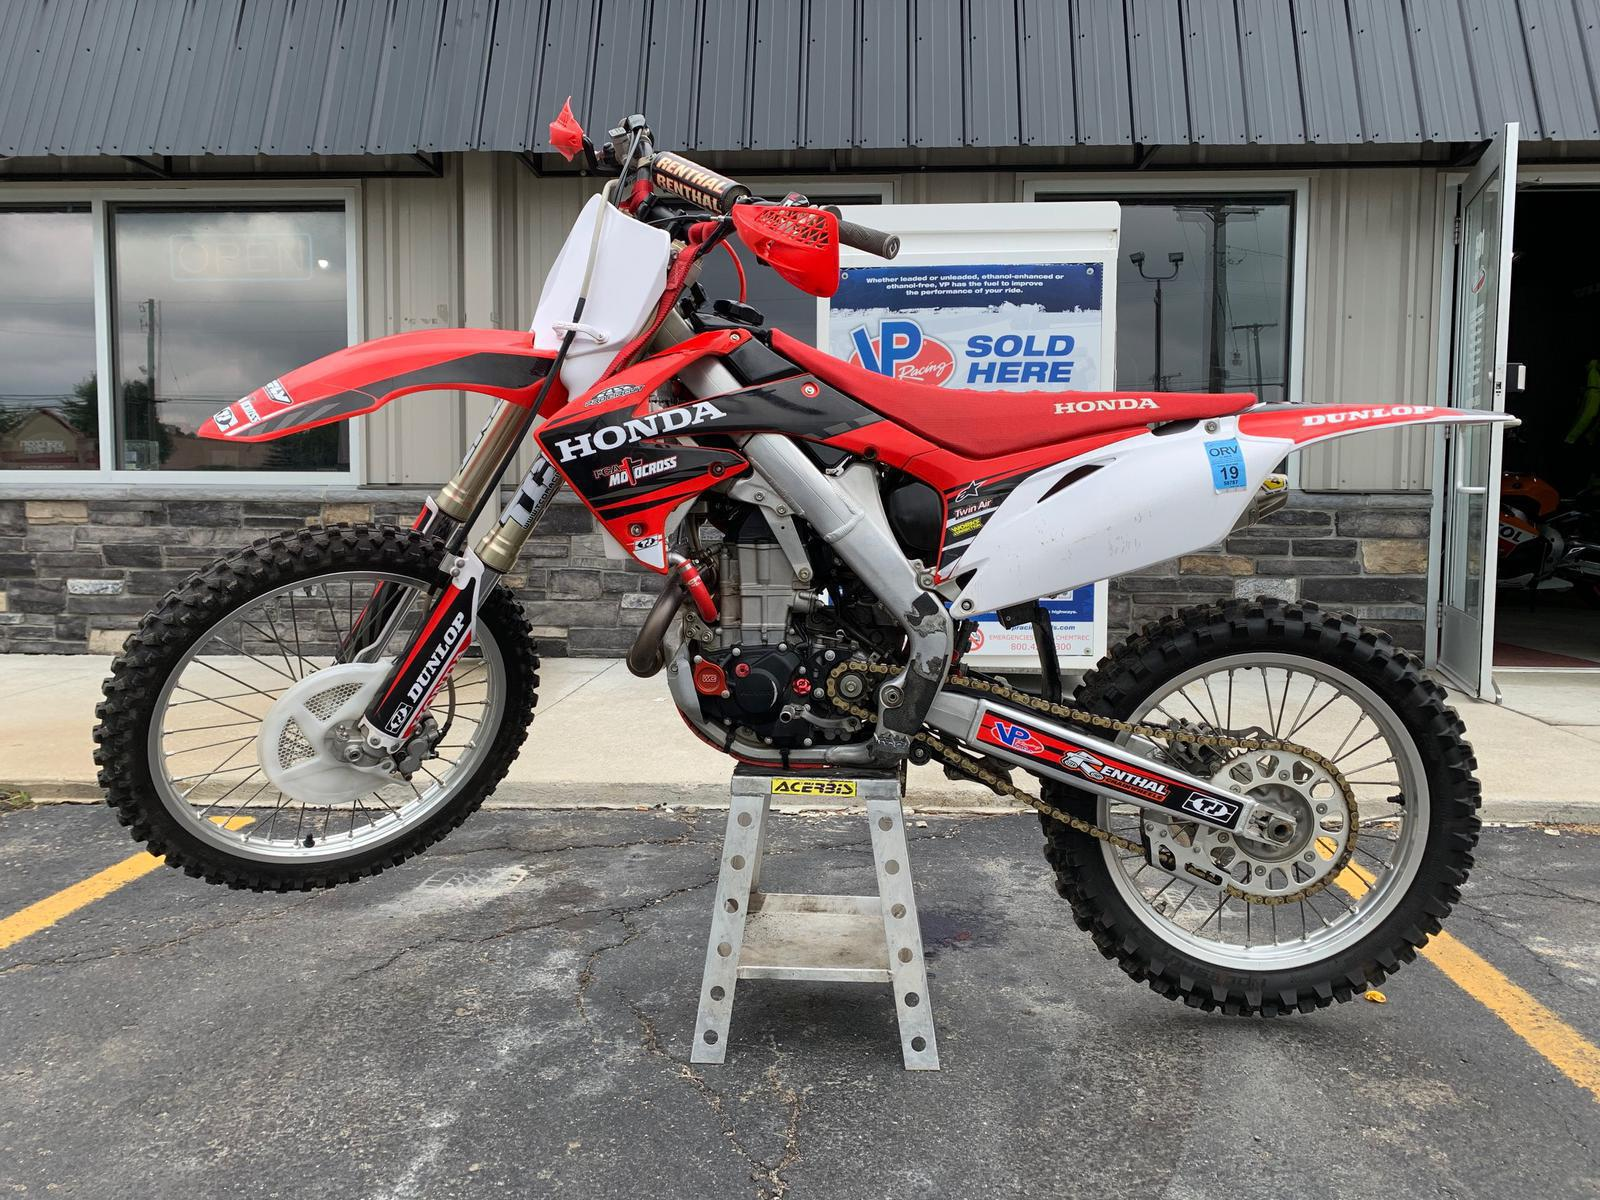 Groovy 2009 Honda Crf450R Gmtry Best Dining Table And Chair Ideas Images Gmtryco